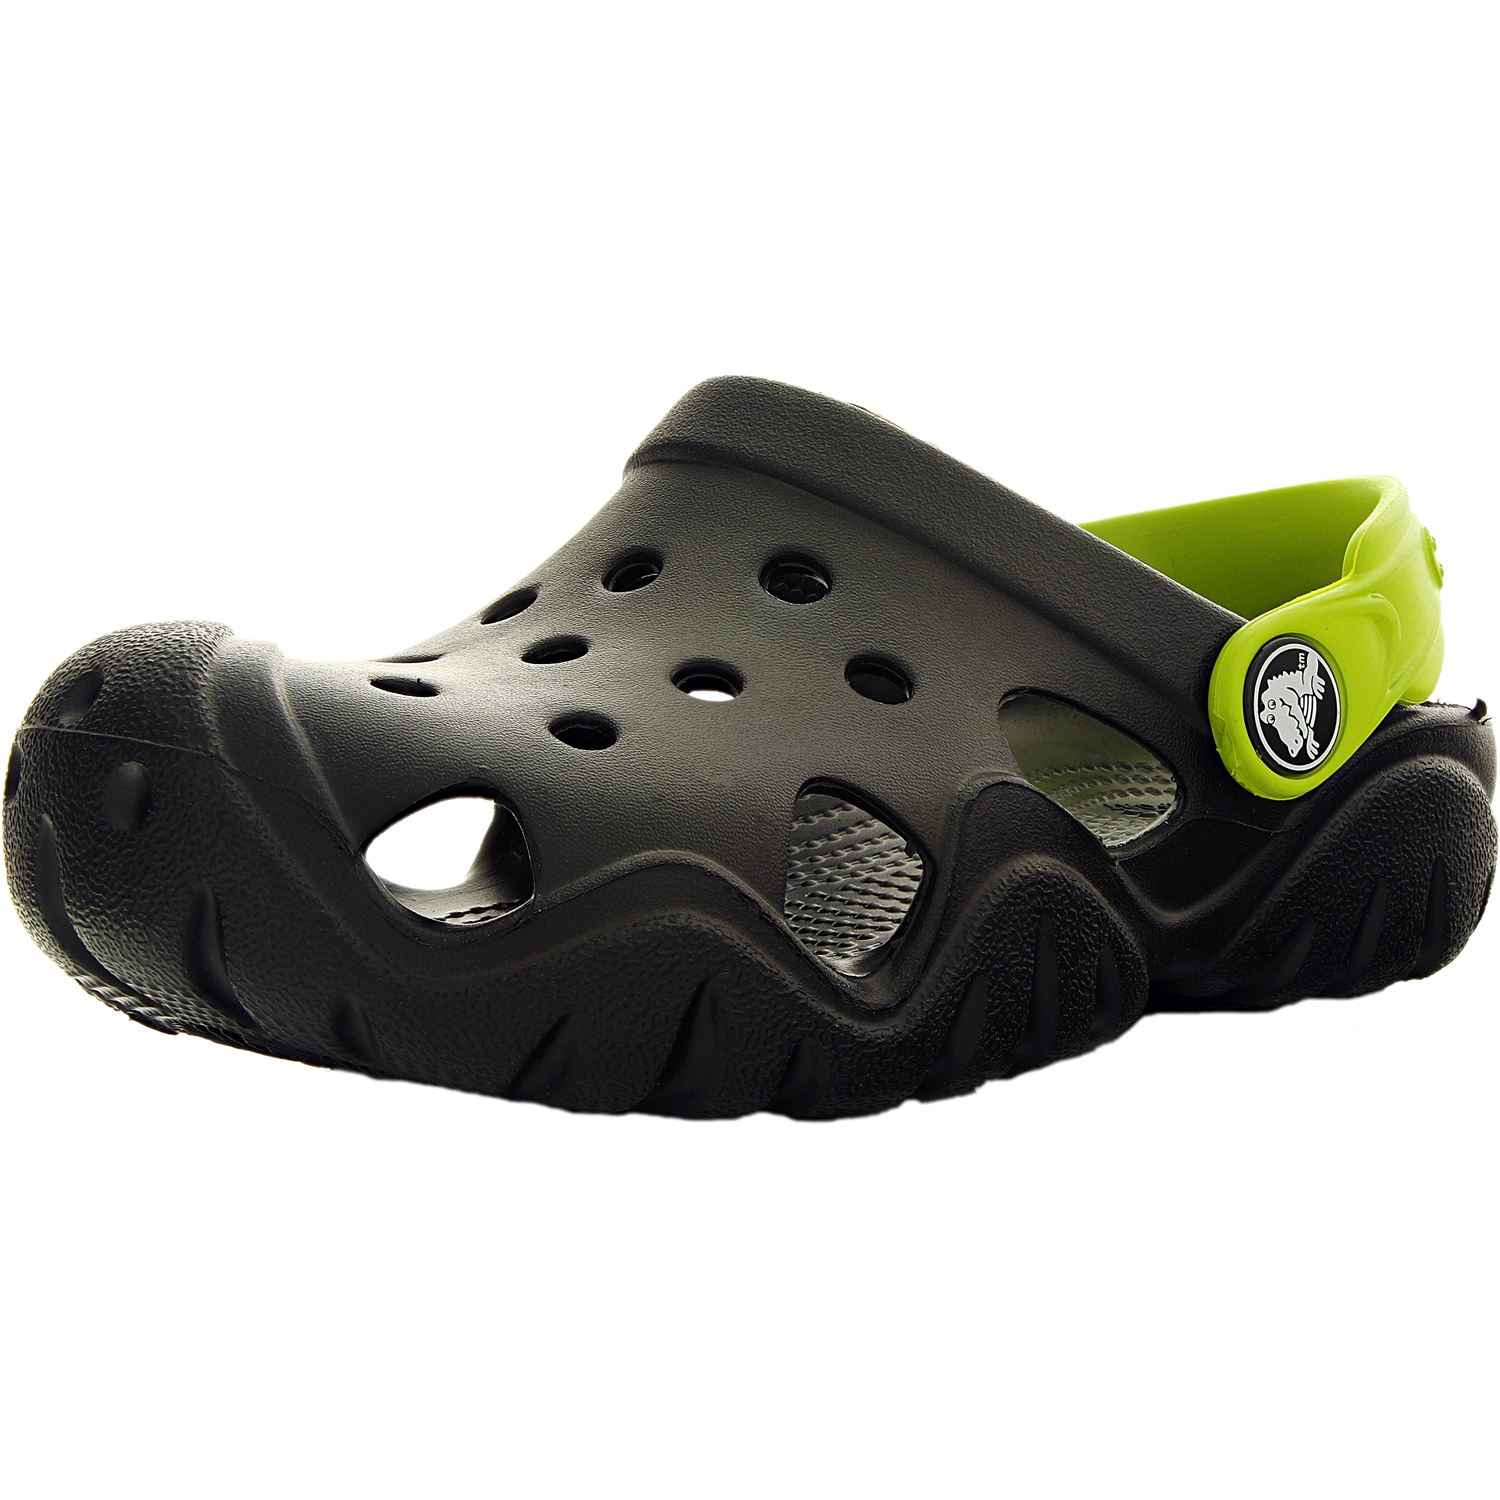 Crocs Boy's Swiftwater Clog Black Volt Green Ankle-High Flat Shoe 2M by Crocs